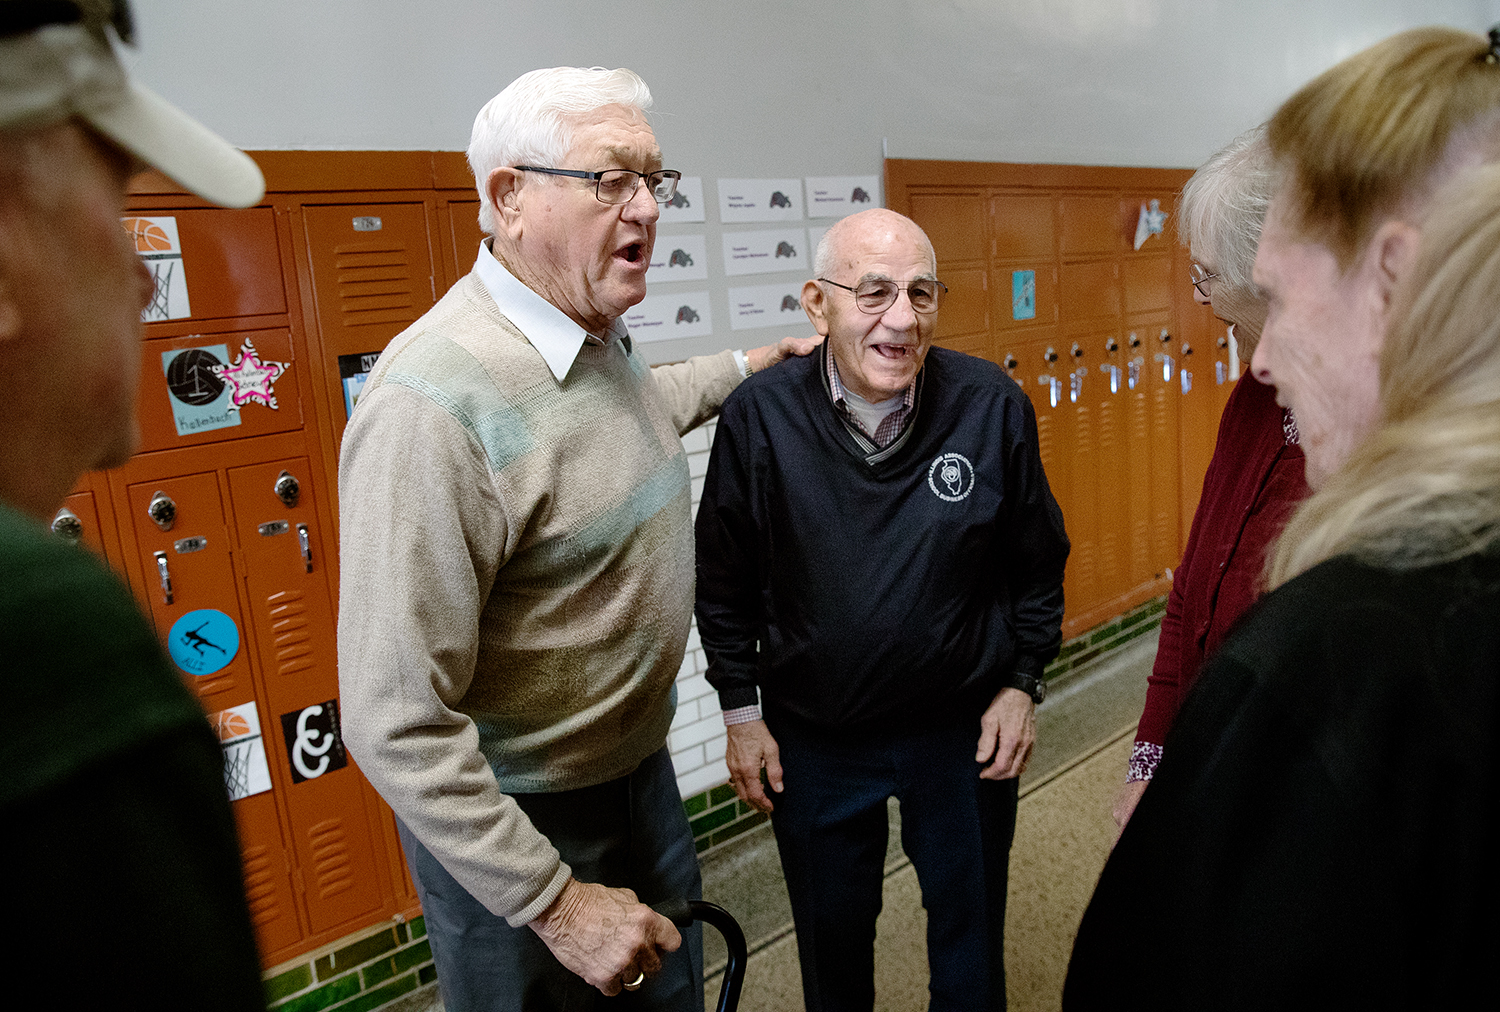 Ervin Shores, left, and Calvin Jackson reminisce with friends in the hallways of Virden Community High School during an open house Saturday, April 13, 2019. The old school buildings are being razed to make way for new North Mac High School facilities on the same property. [Ted Schurter/The State Journal-Register]